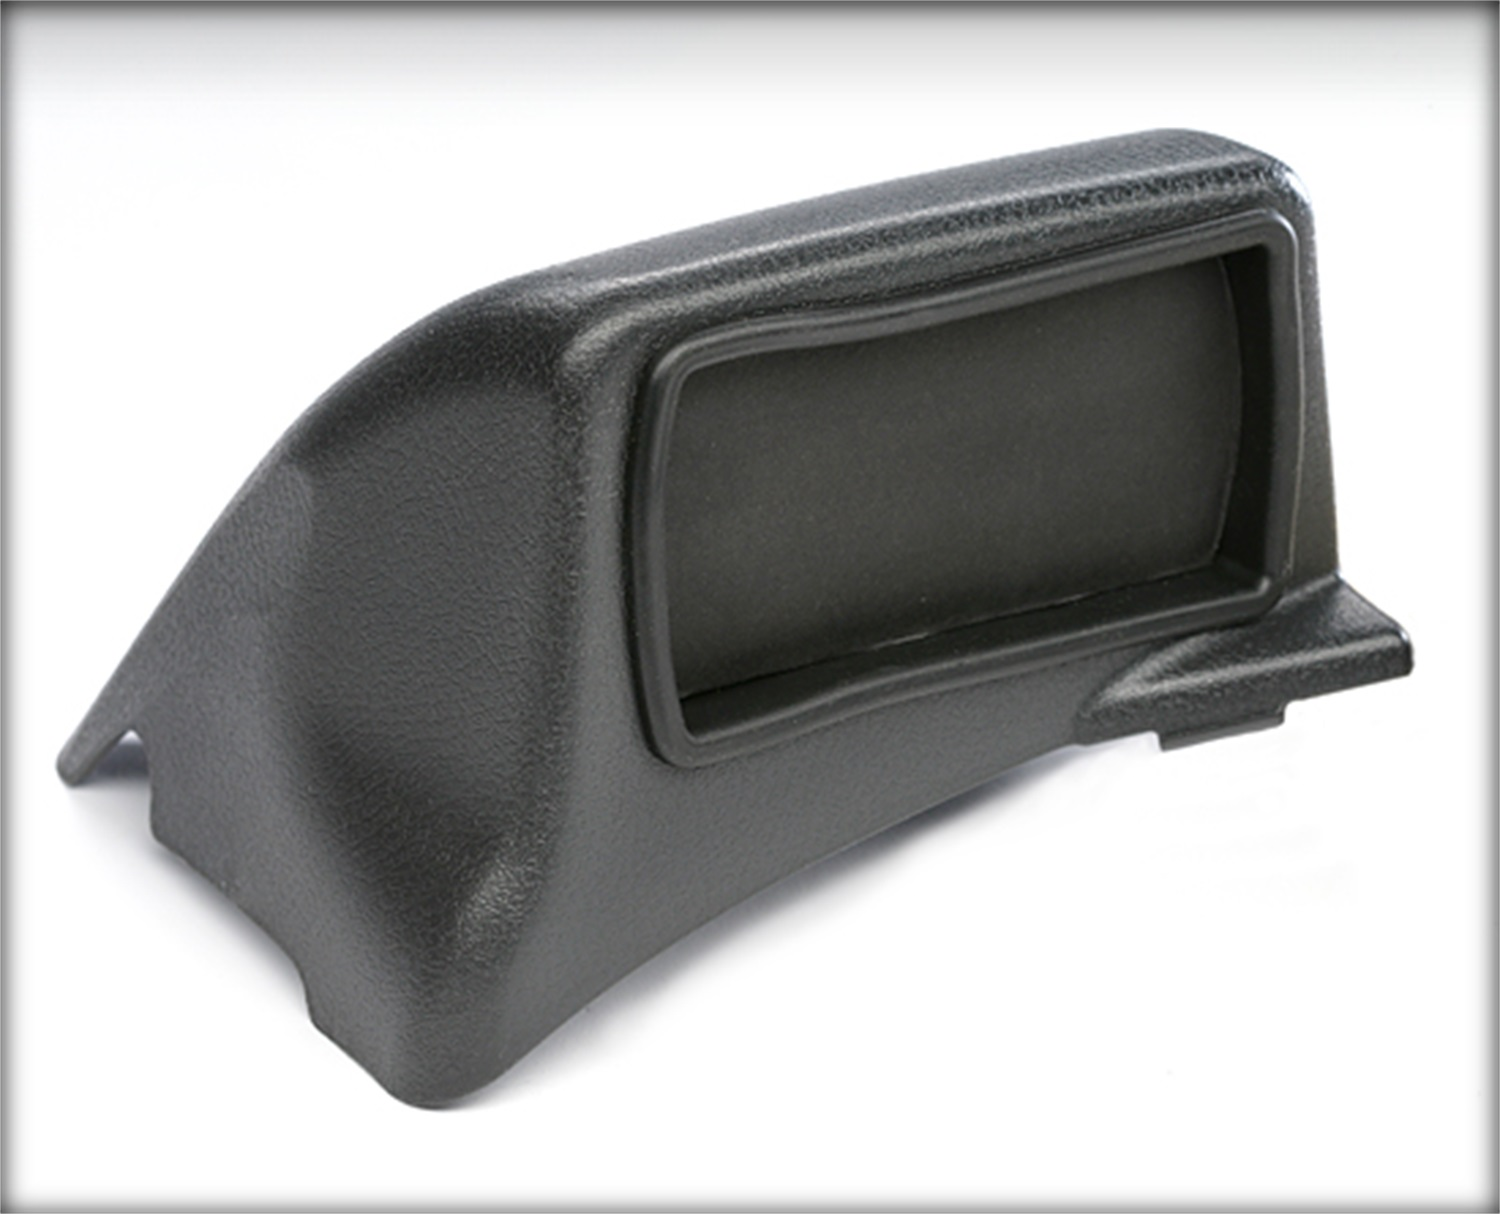 Edge Products 38503 Dodge Dash Pod Fits 98-02 Ram 1500 Ram 2500 Ram 3500